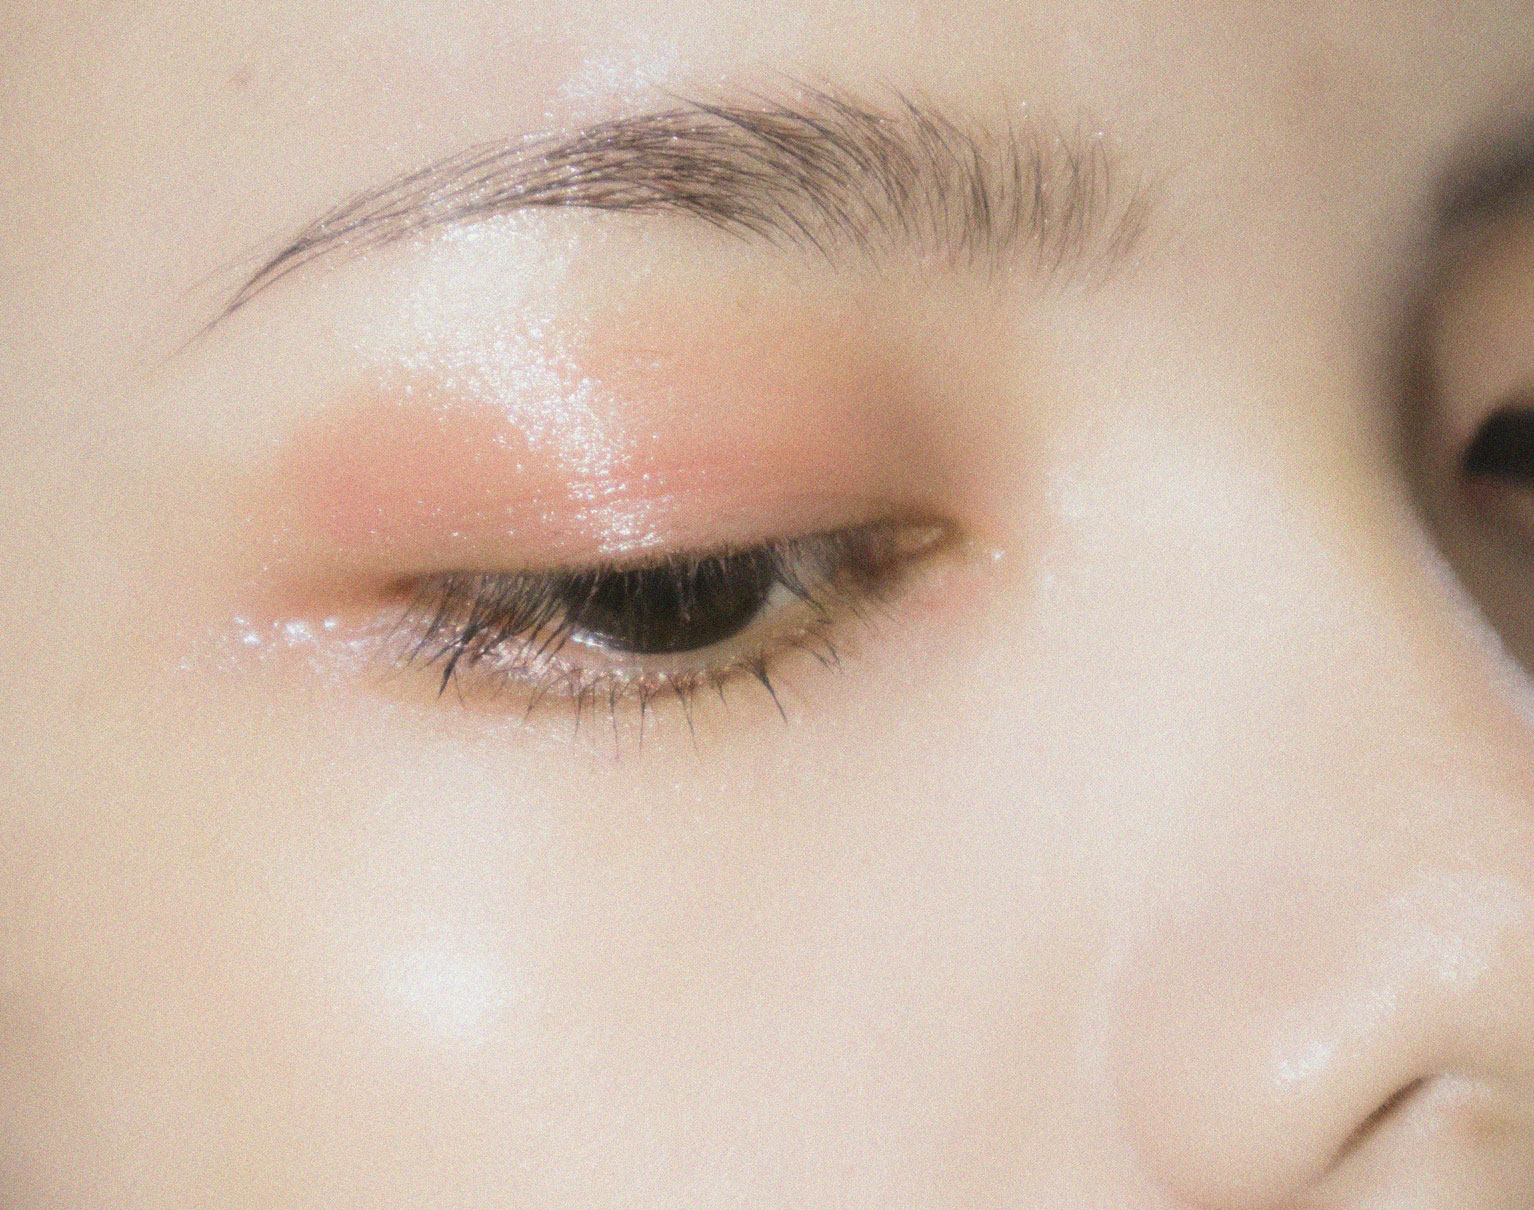 Recovery after Blepharoplasty